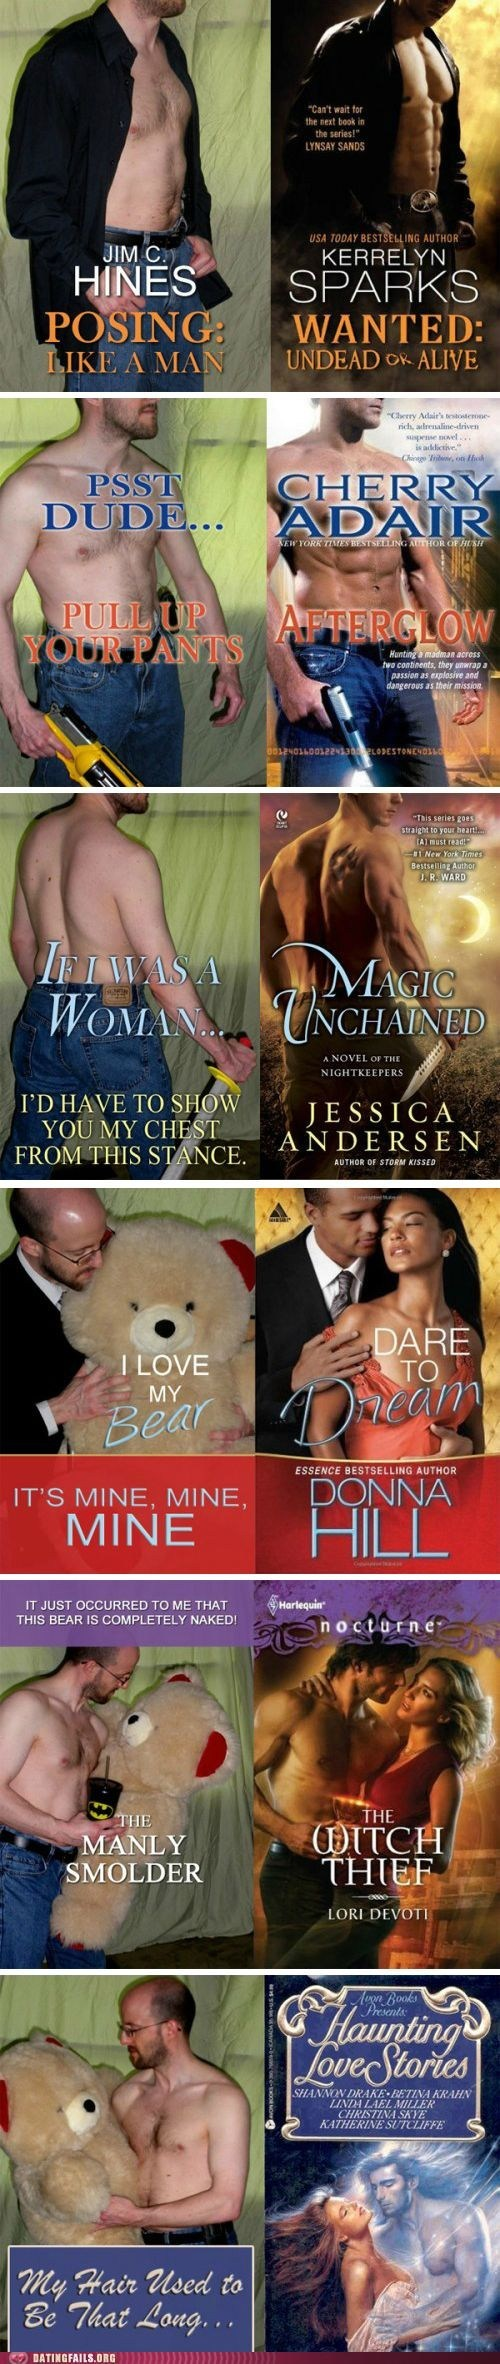 novel covers parodies posing like a man romance novels - 6153649664